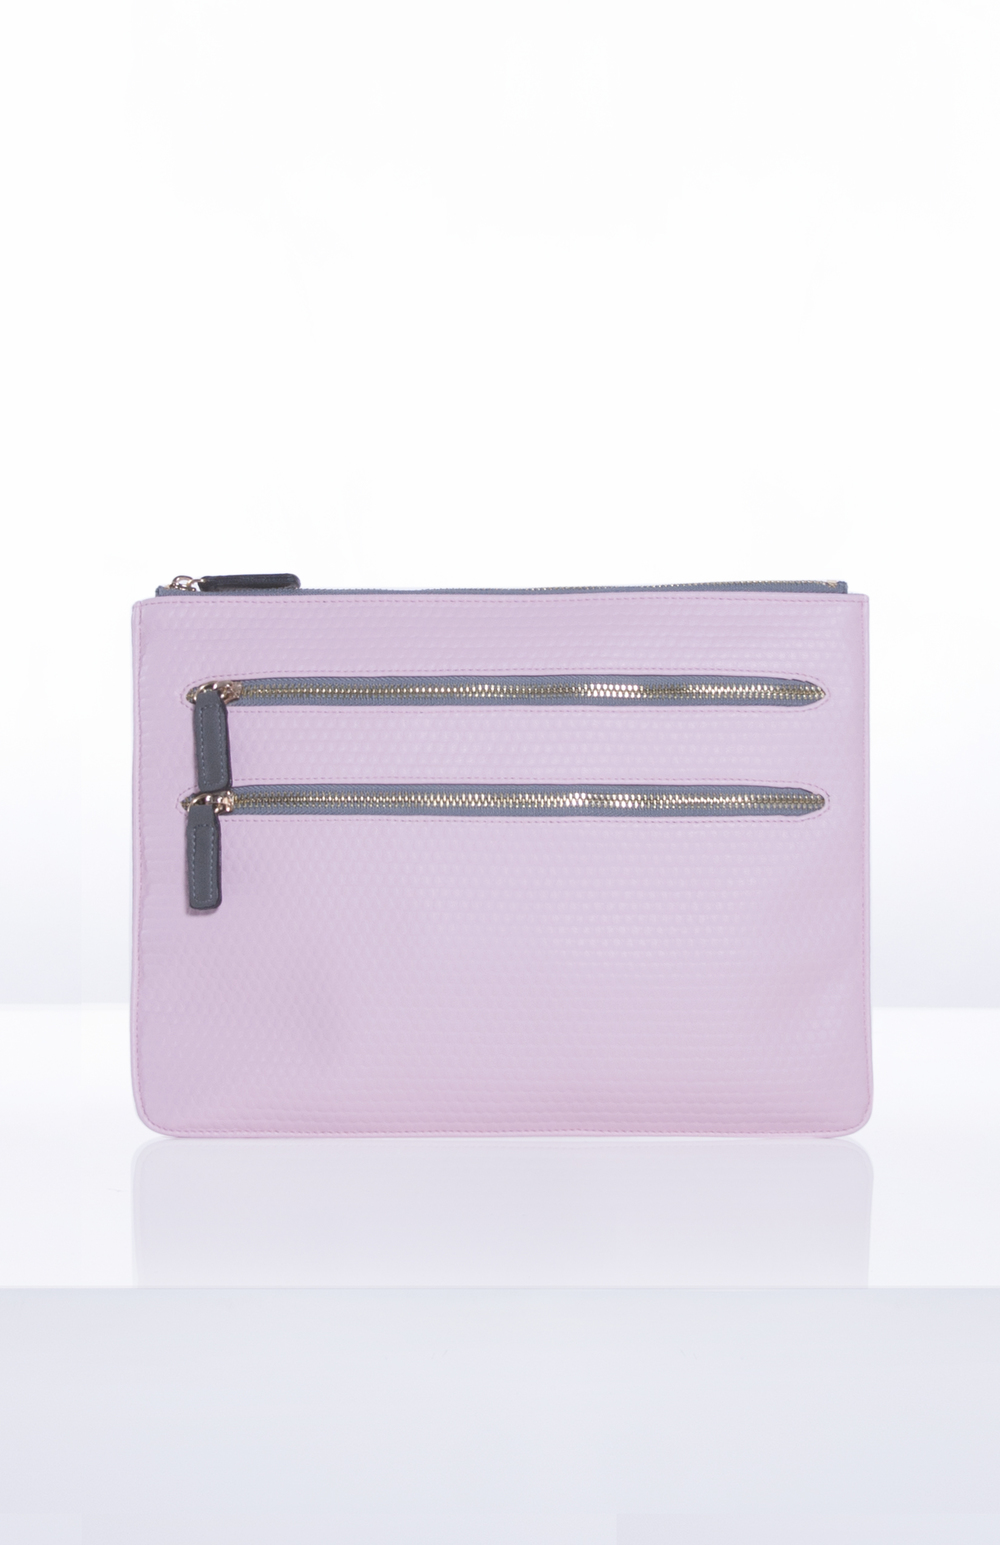 MILLY TECH POUCH- Blush Bubble PU